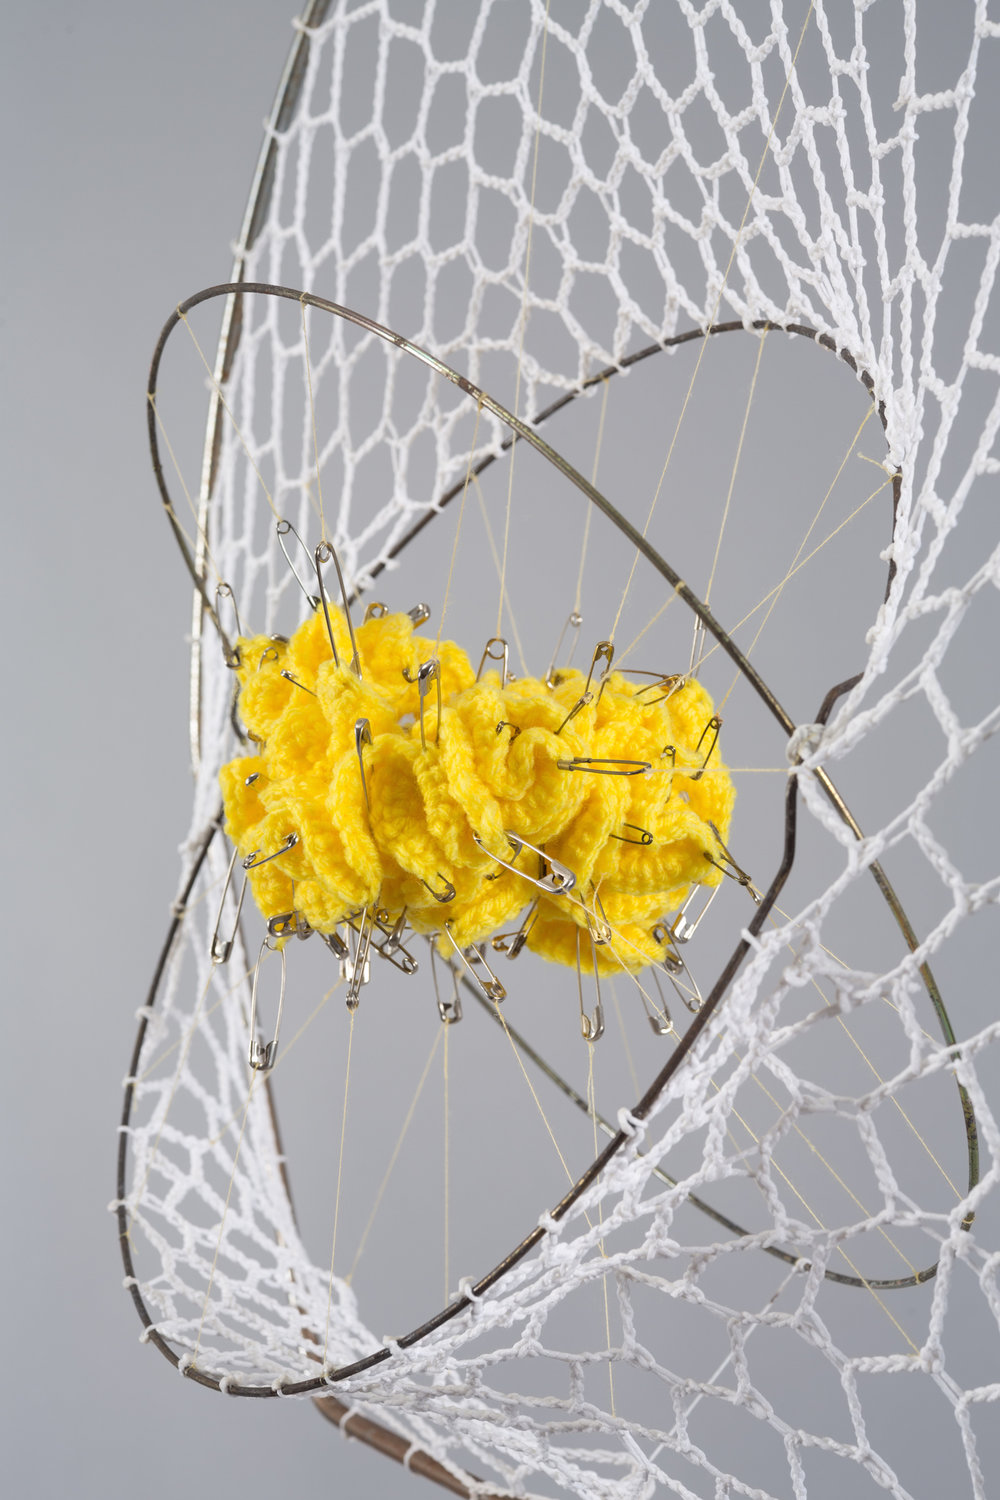 Canary, 2017 - Yarn, metal, safety pins